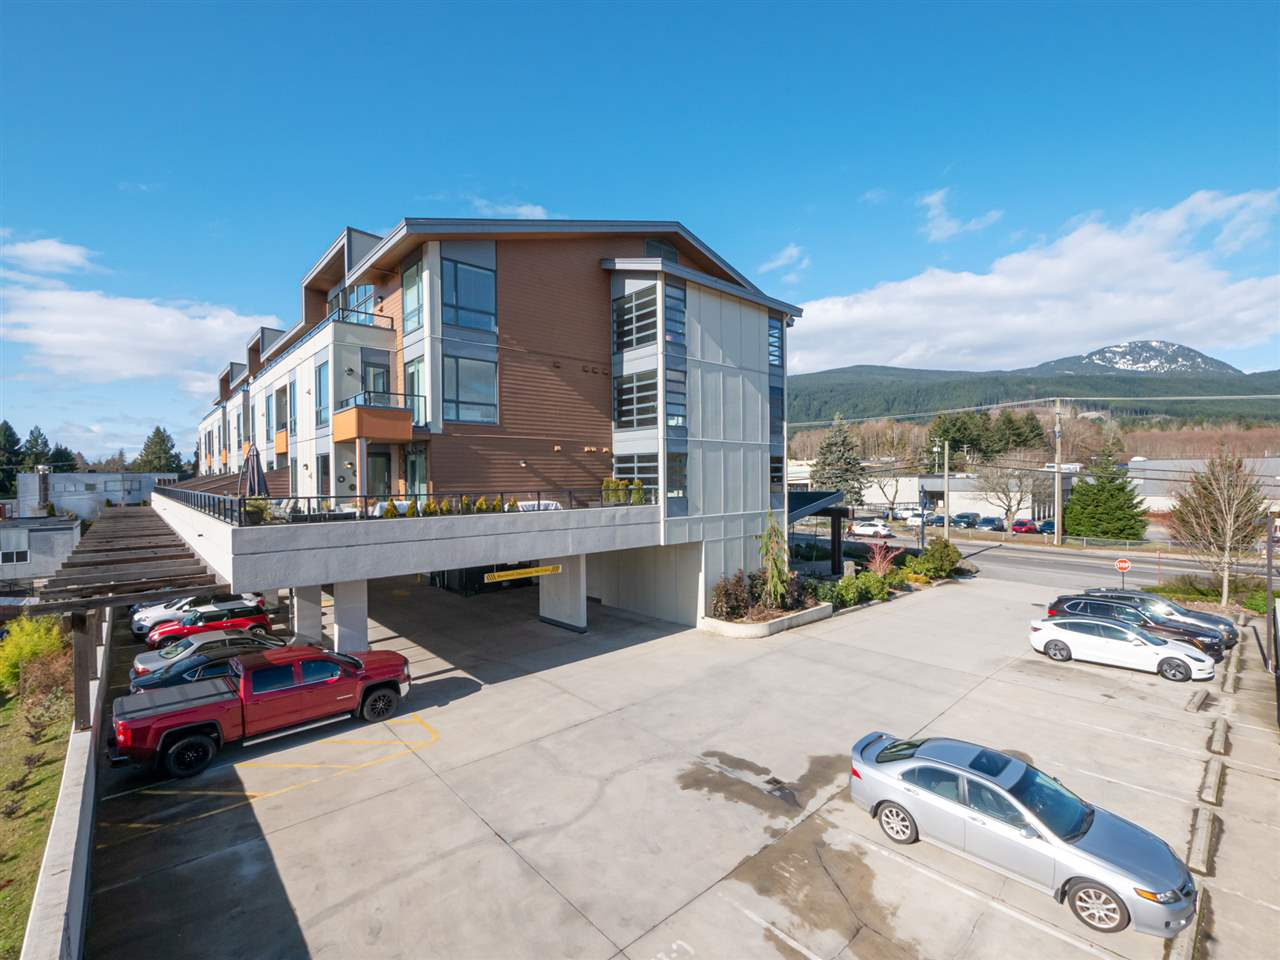 210 875 GIBSONS WAY - Gibsons & Area Apartment/Condo for sale, 2 Bedrooms (R2542139) - #24